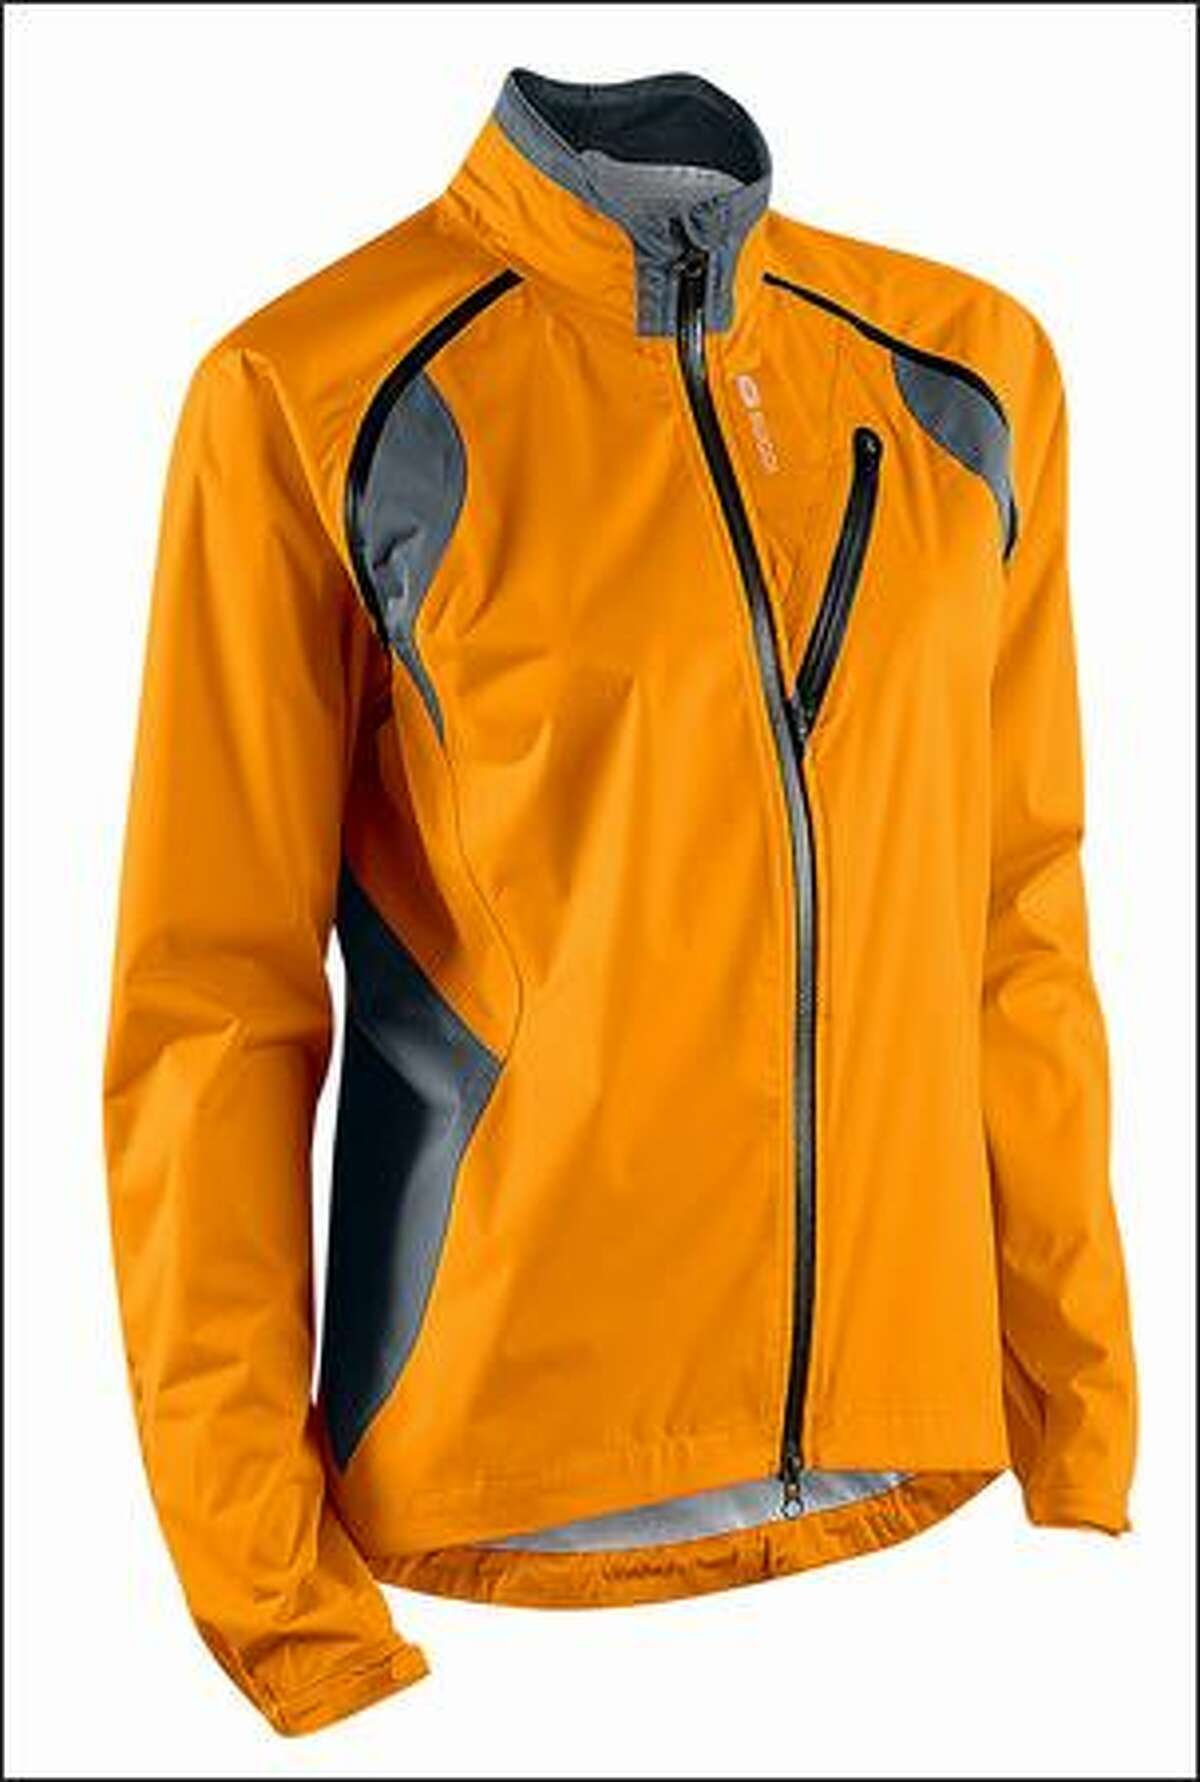 The Majik aerobic-sports jacket comes in a men's and women's model and costs $170.